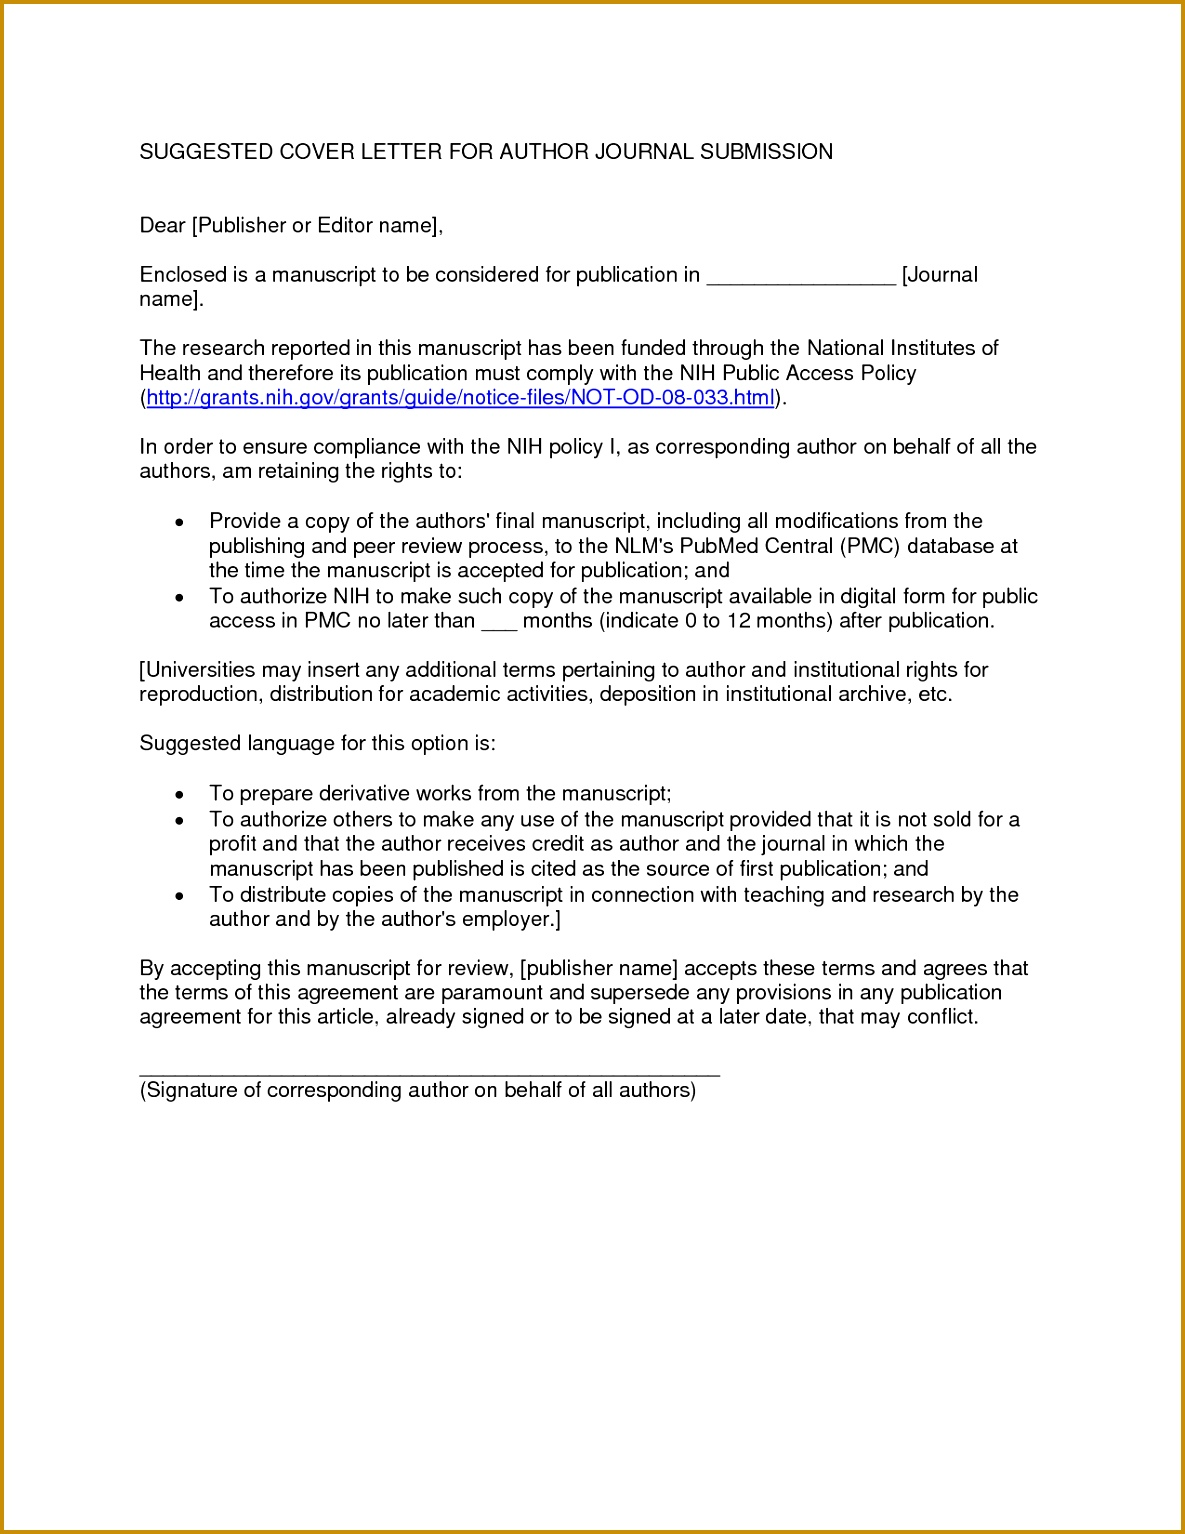 Elegant Cover Letter To Editor Scientific Journal Sample 16 With Additional Cover Letter Samples For Receptionist Administrative Assistant with Cover Letter 15341185